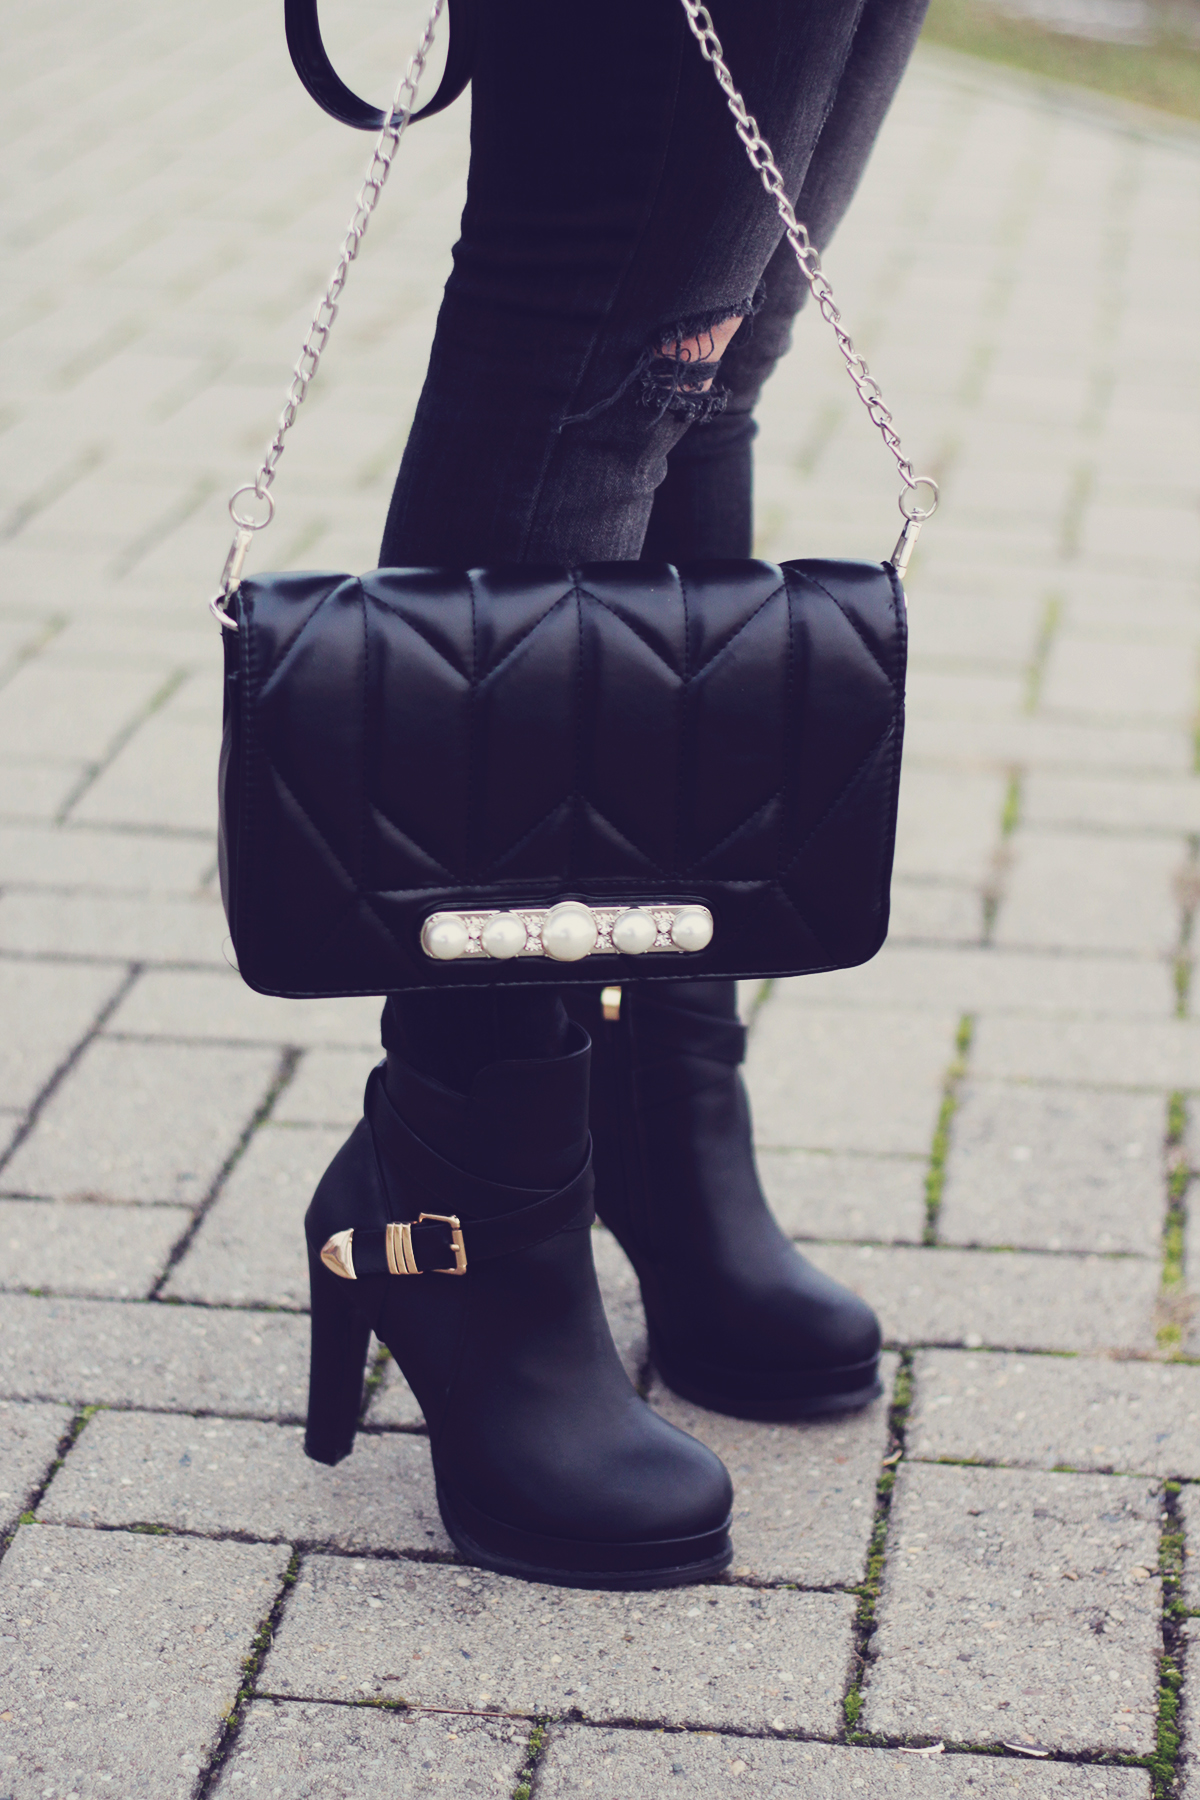 winter fashion, high boots, chevron bag with pearl detailing